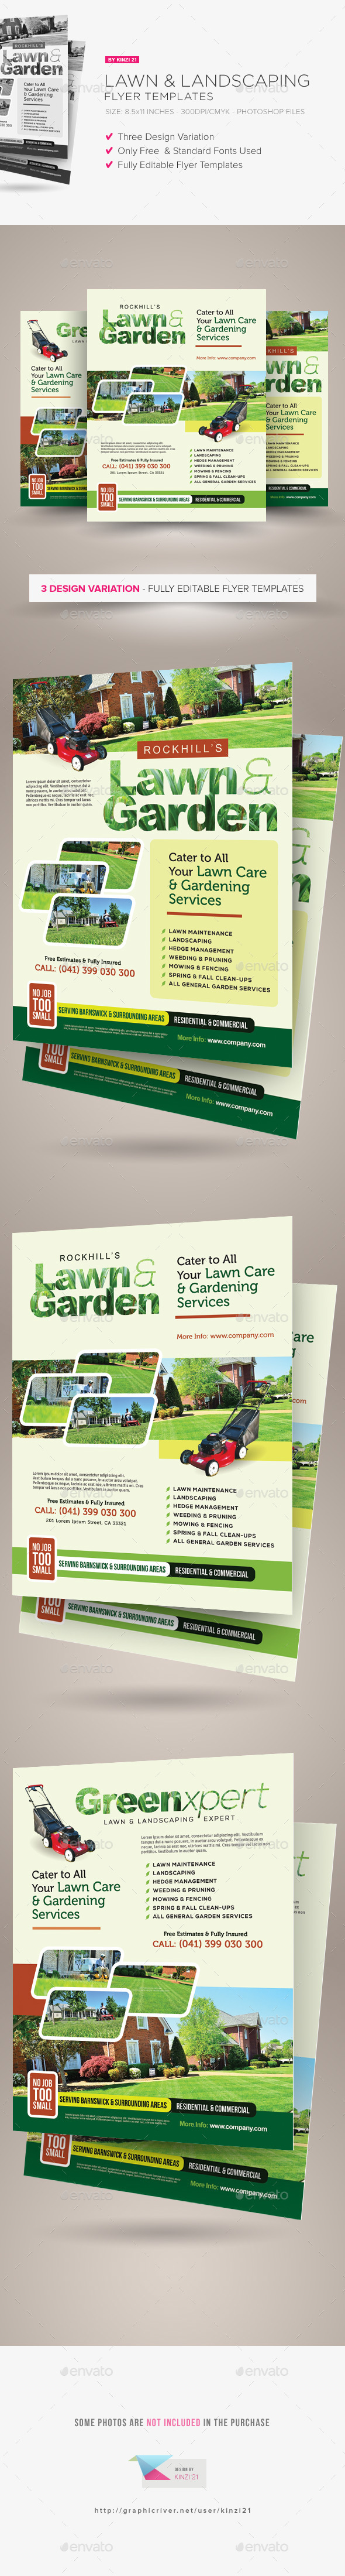 lawn u0026 landscaping flyer templates flyer template lawn and graphics